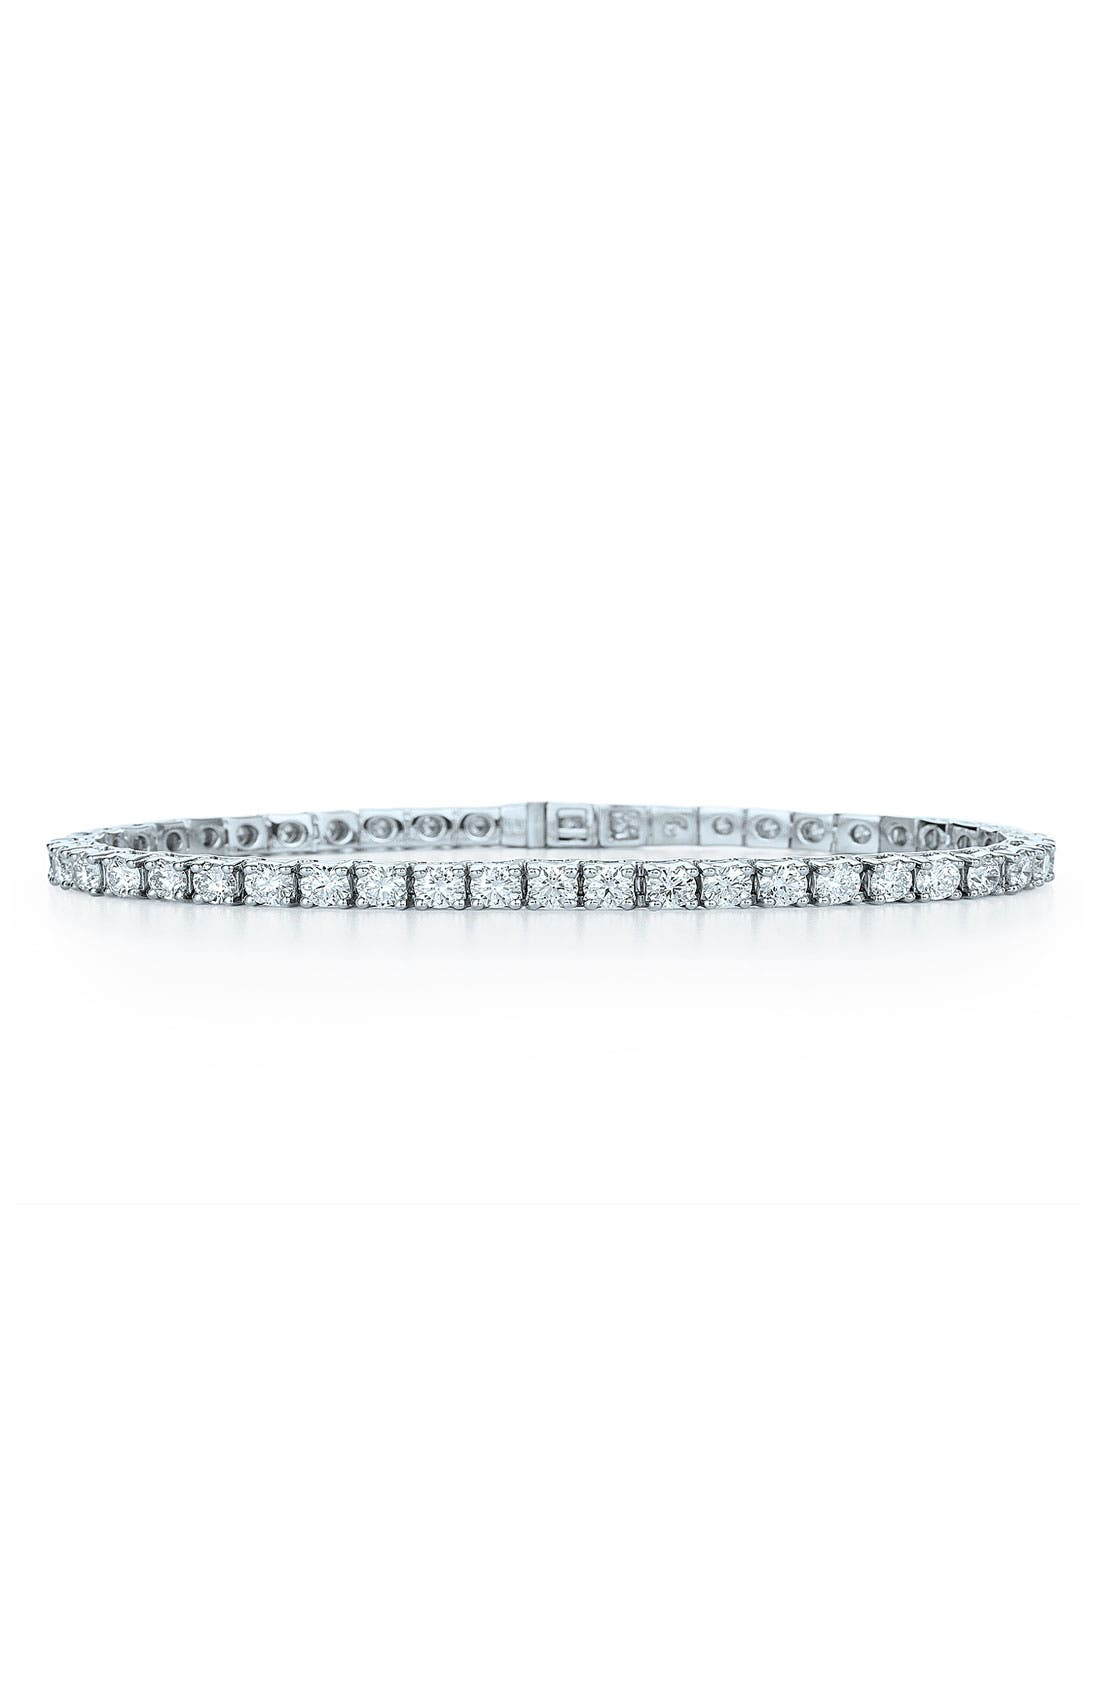 Alternate Image 1 Selected - Kwiat 'Riviera' Diamond Tennis Bracelet